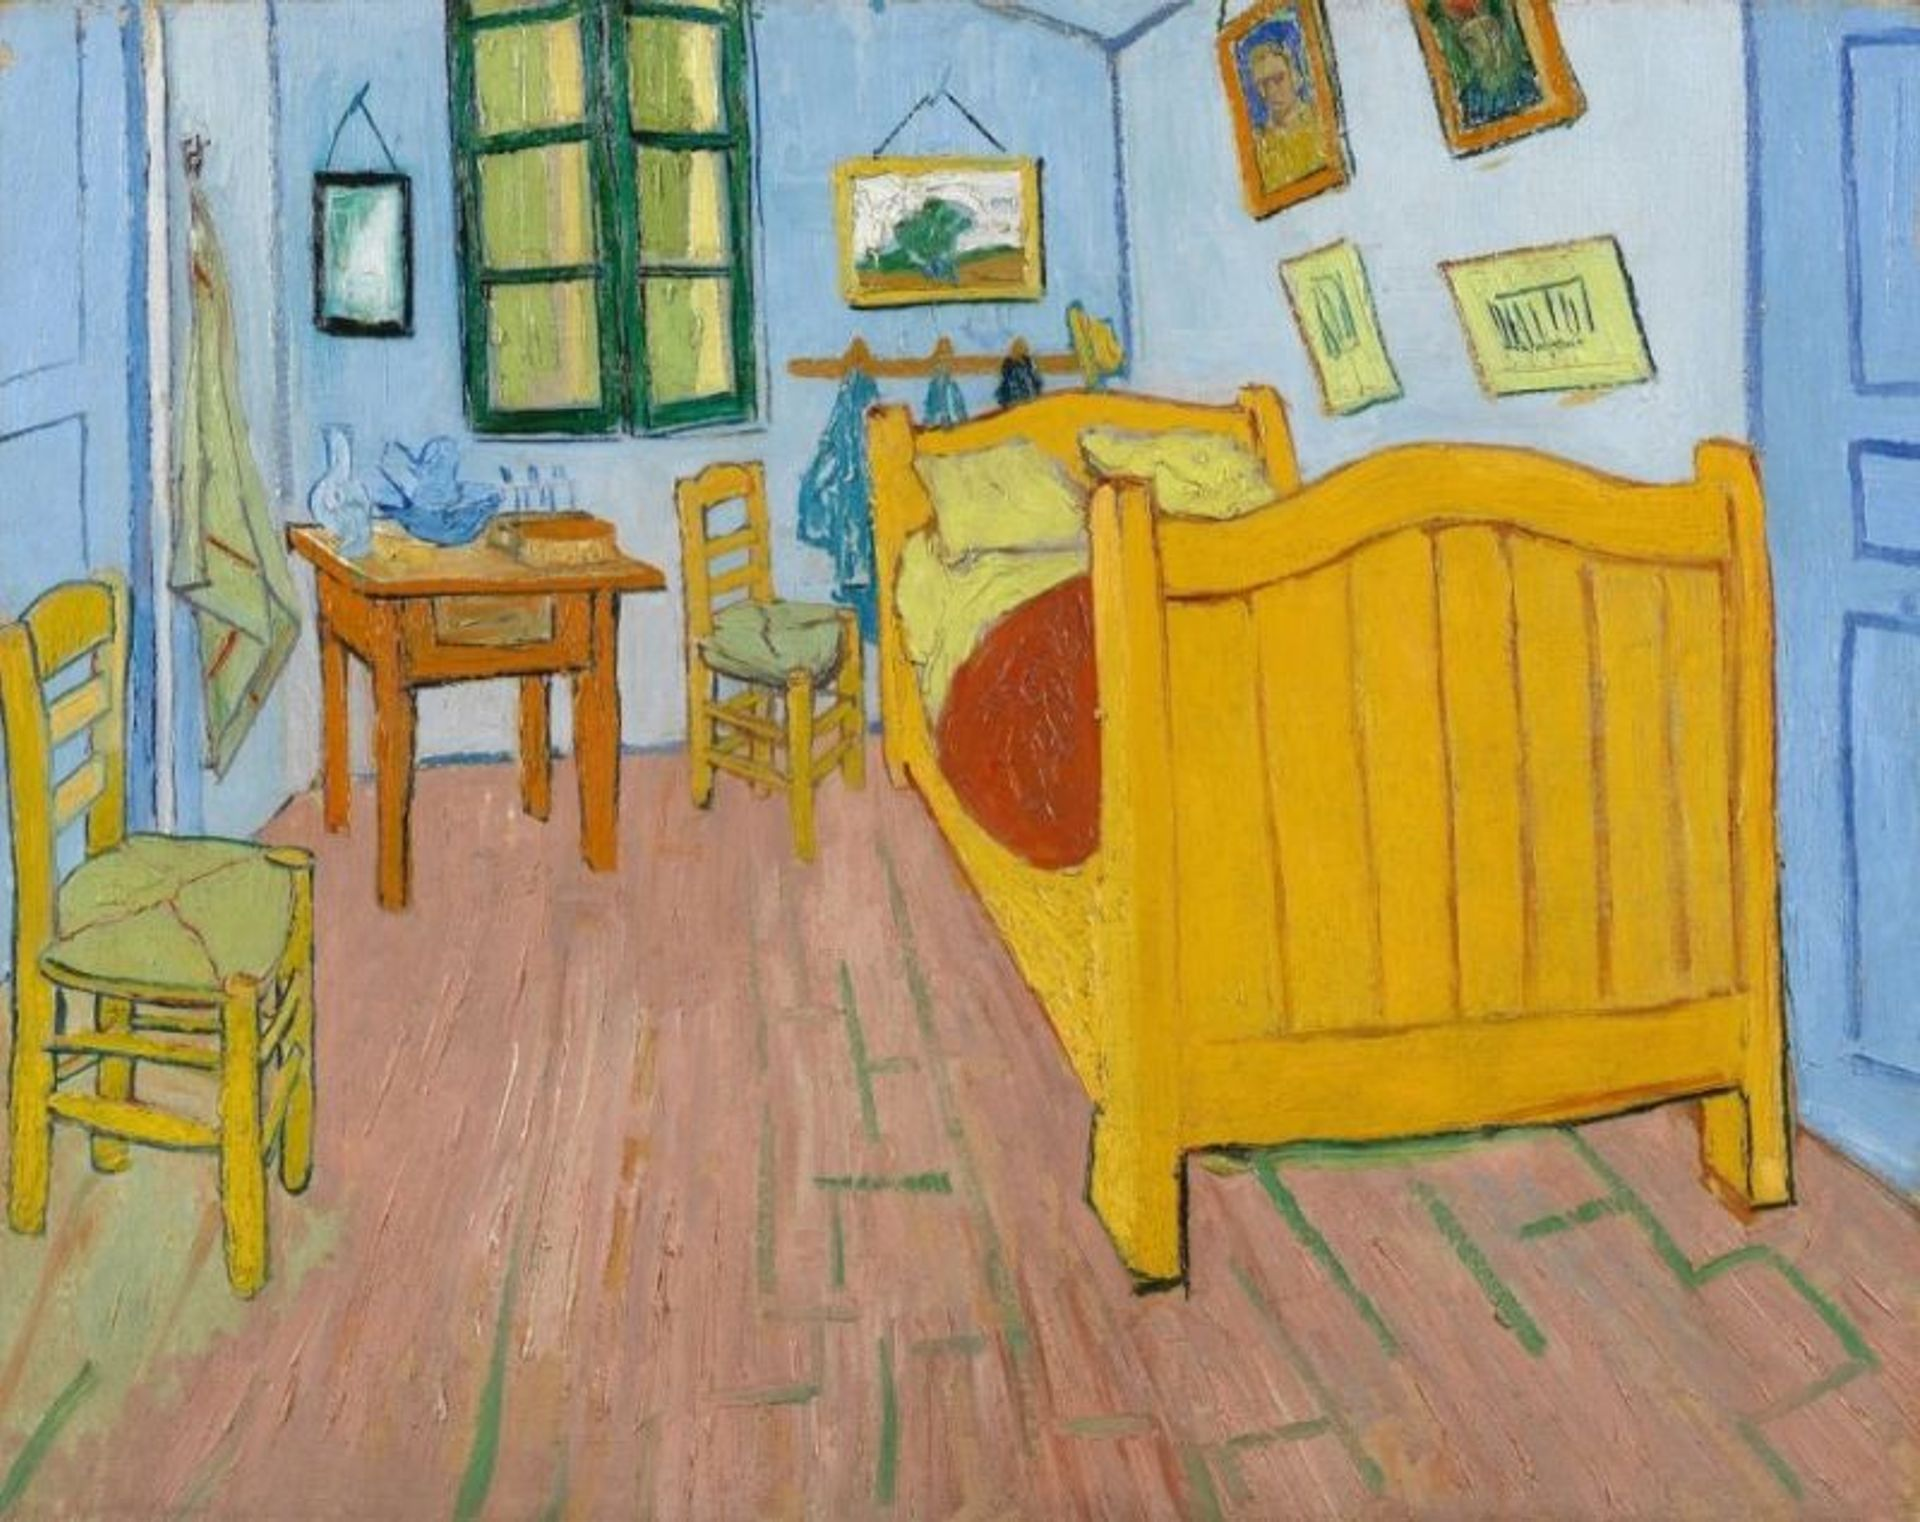 Vincent van Gogh's The Bedroom (1888) Courtesy of the Van Gogh Museum, Amsterdam (Vincent van Gogh Foundation)